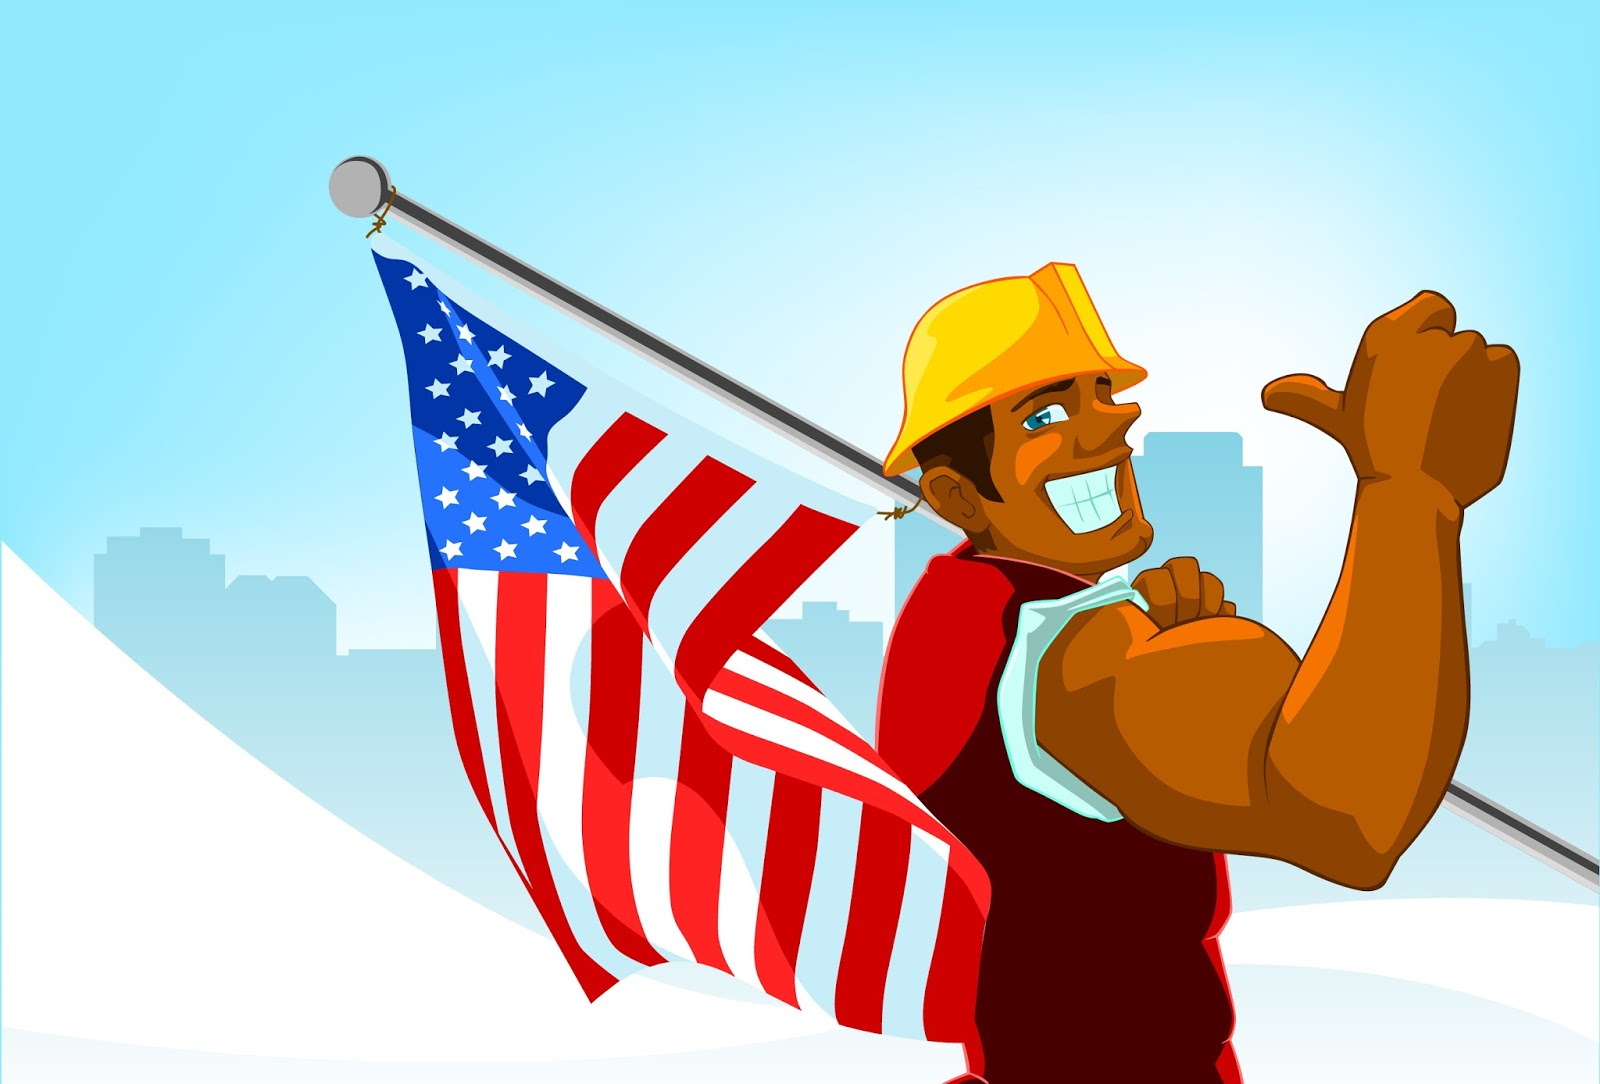 Labor Day in the United States of America is a public holiday celebrated on the first Monday in September It honors the American labor movement and the contributions